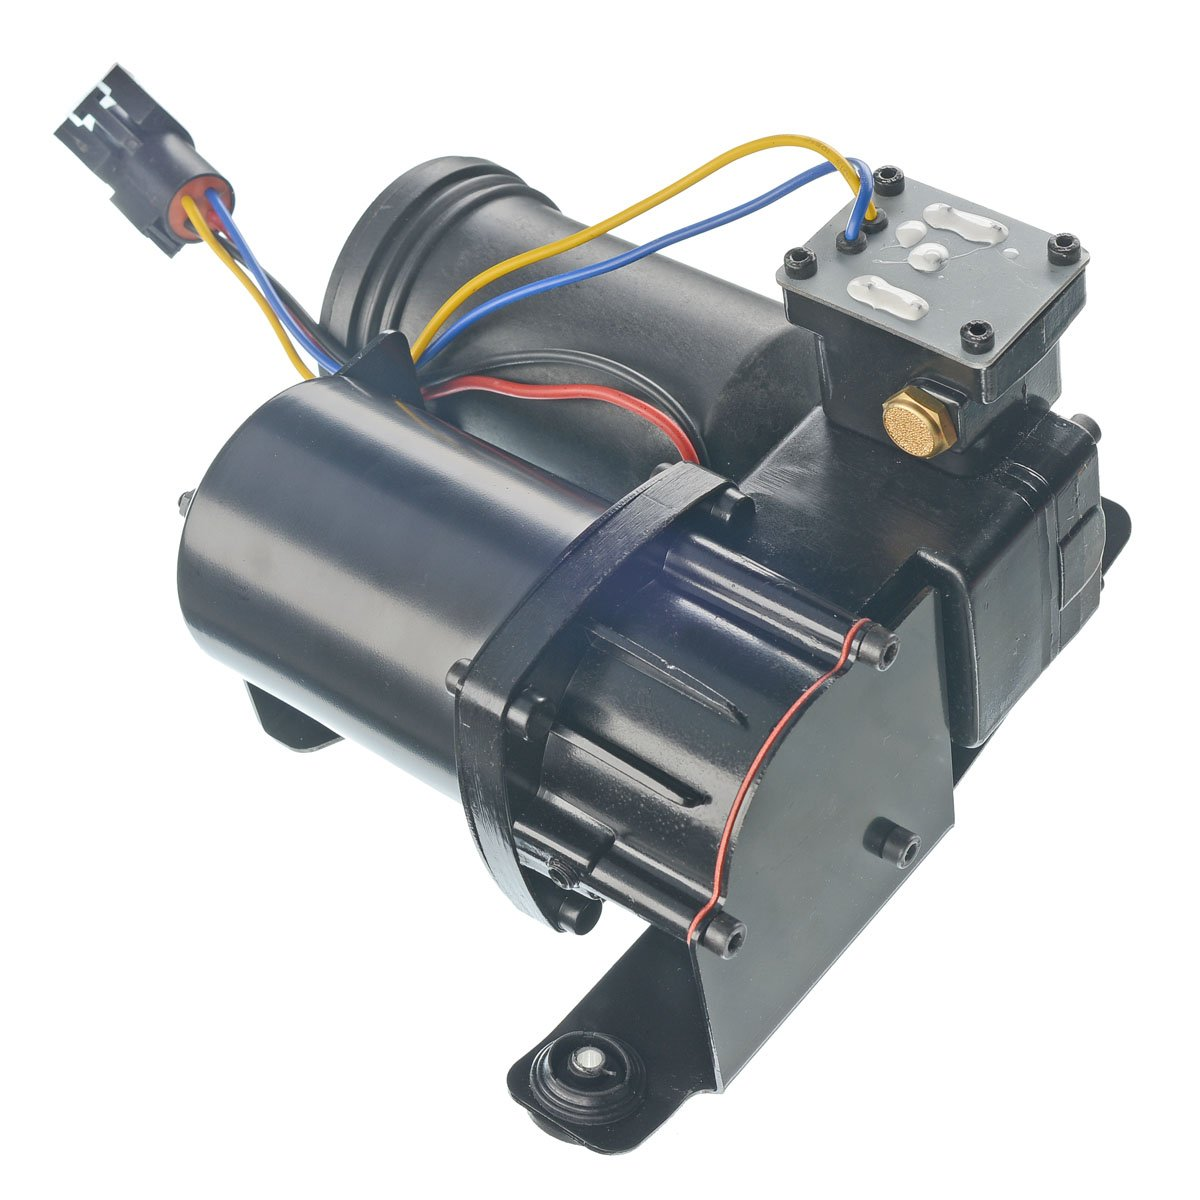 Suspension Air Compressor for Lincoln Navigator Ford Expedition 2007-2014 YTAUTOPARTS